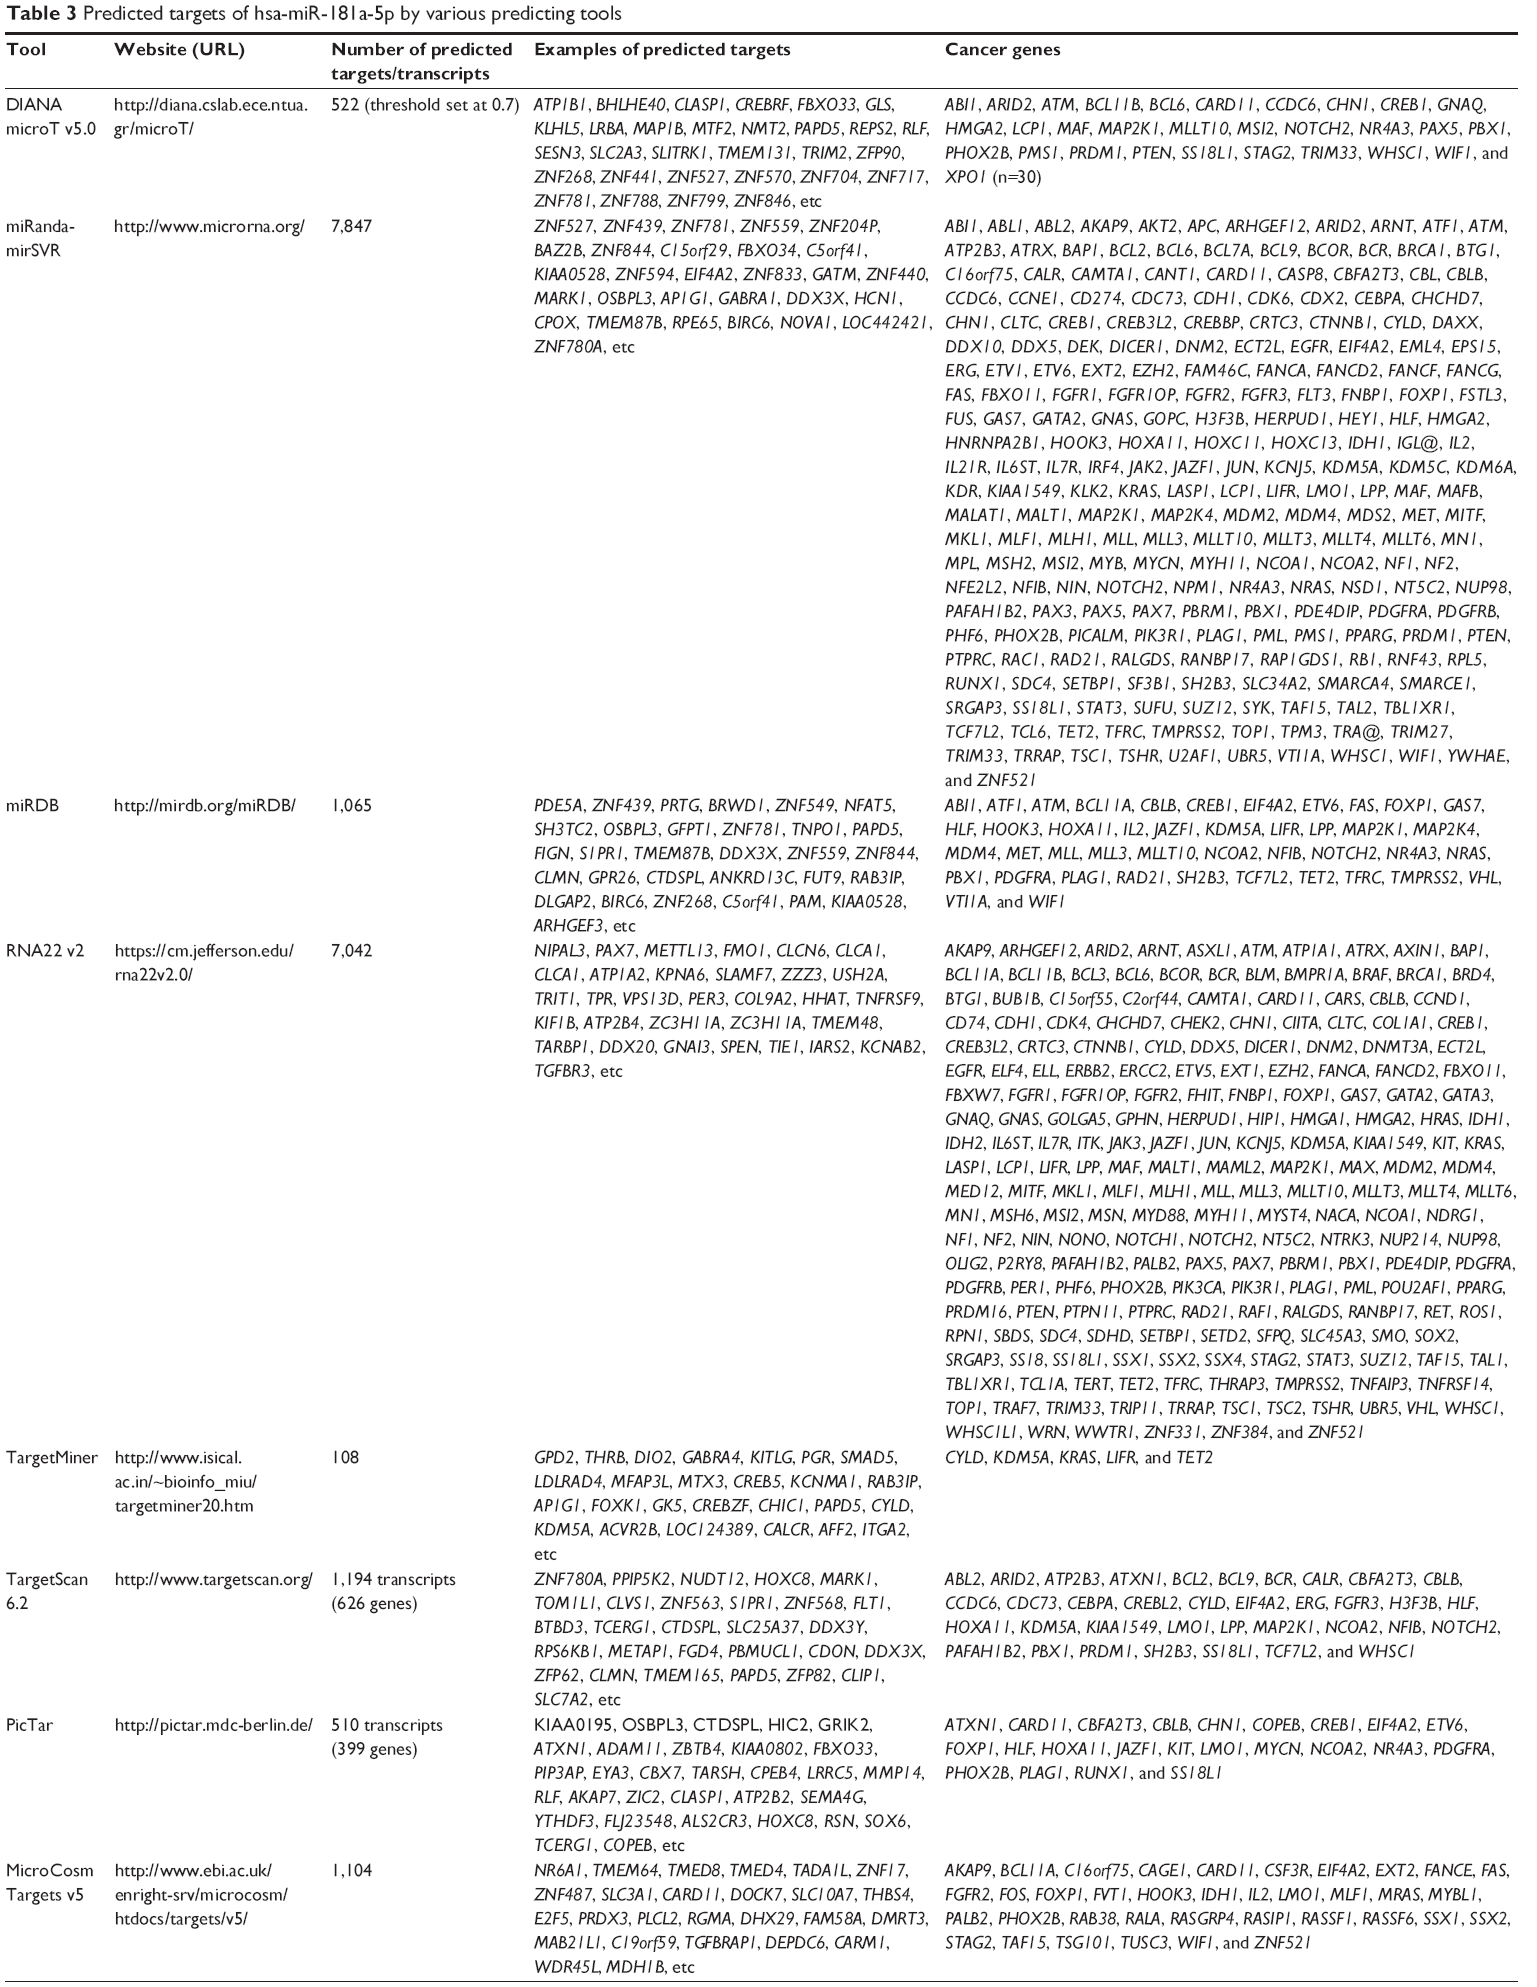 [Full text] Hsa-microRNA-181a is a regulator of a number